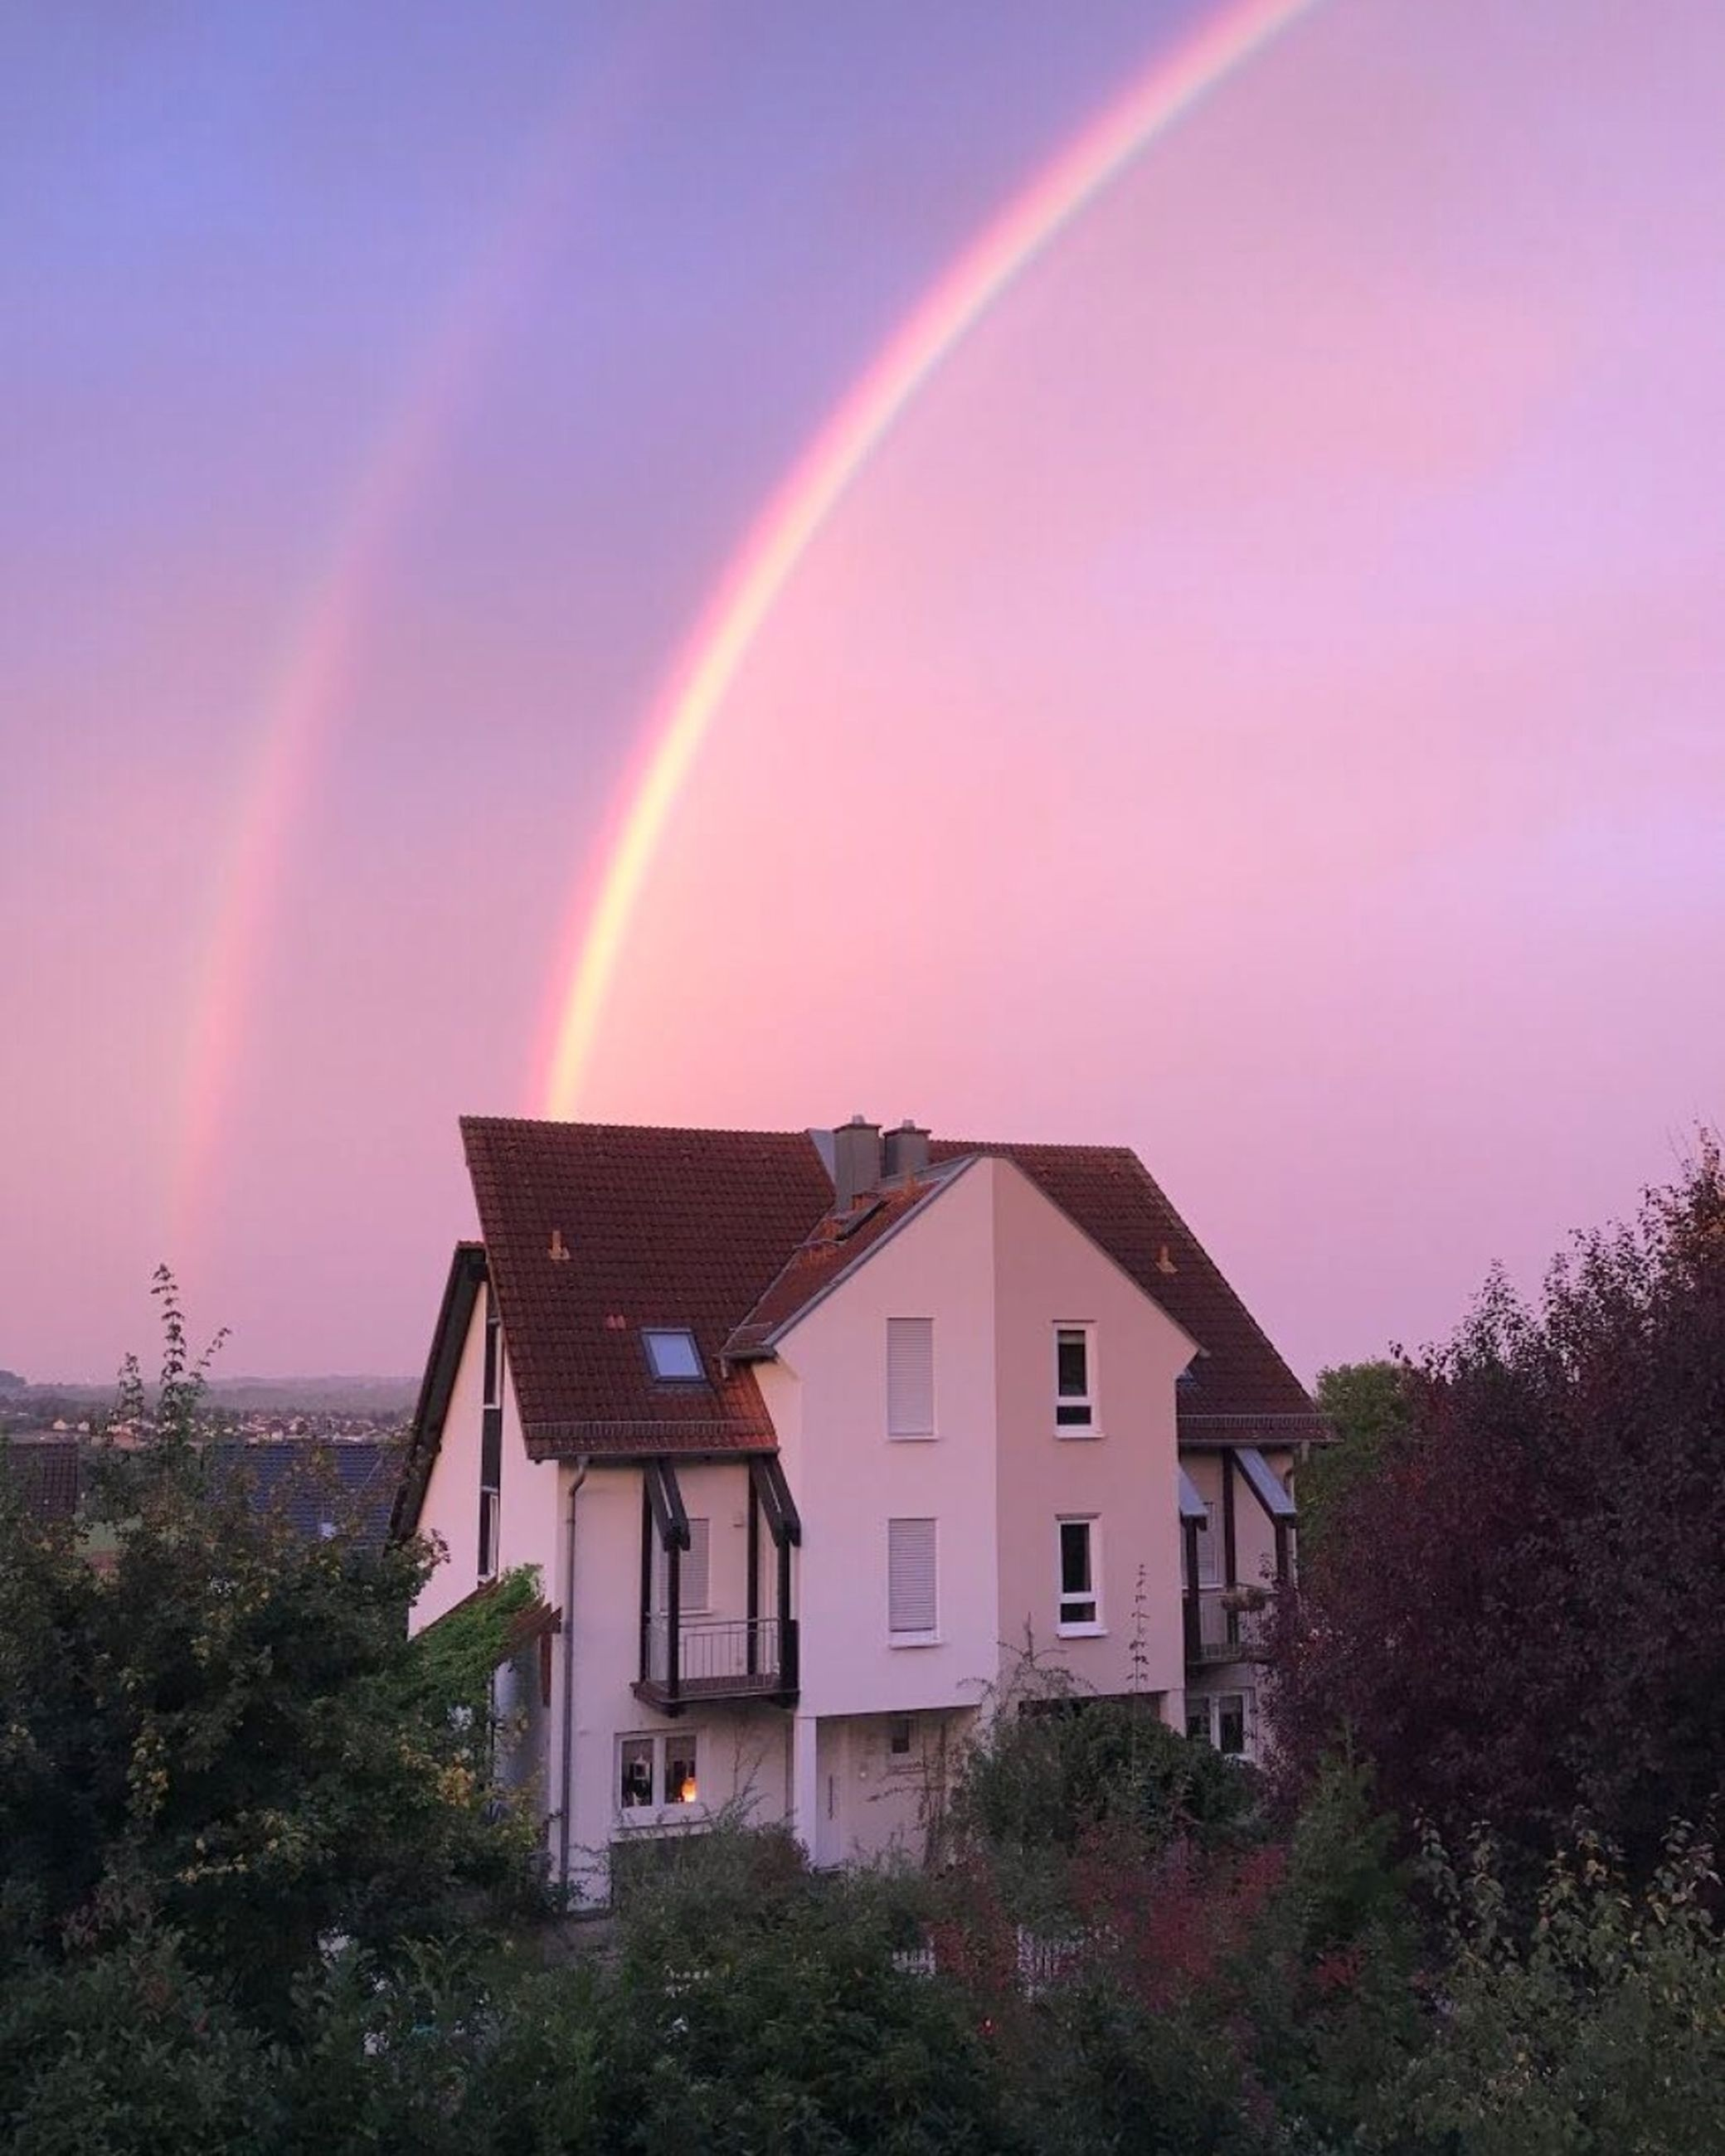 built structure, architecture, tree, plant, house, building exterior, sky, building, no people, rainbow, beauty in nature, nature, residential district, multi colored, idyllic, scenics - nature, low angle view, outdoors, roof, double rainbow